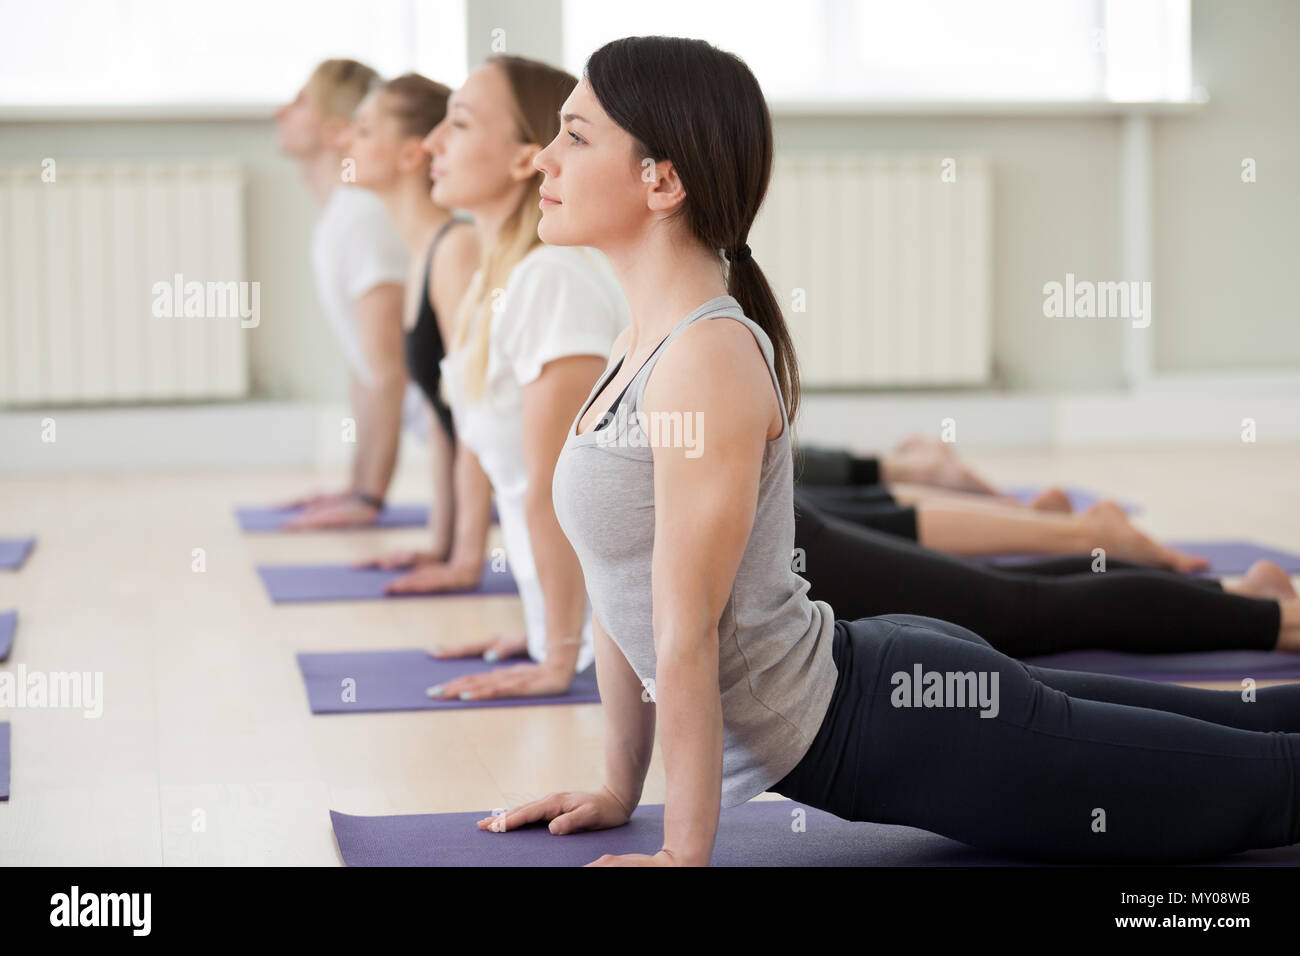 Group of young sporty people doing yoga, up facing dog exercise, Urdhva mukha shvanasana pose, indoor close up, yogi students working out in sport clu Stock Photo